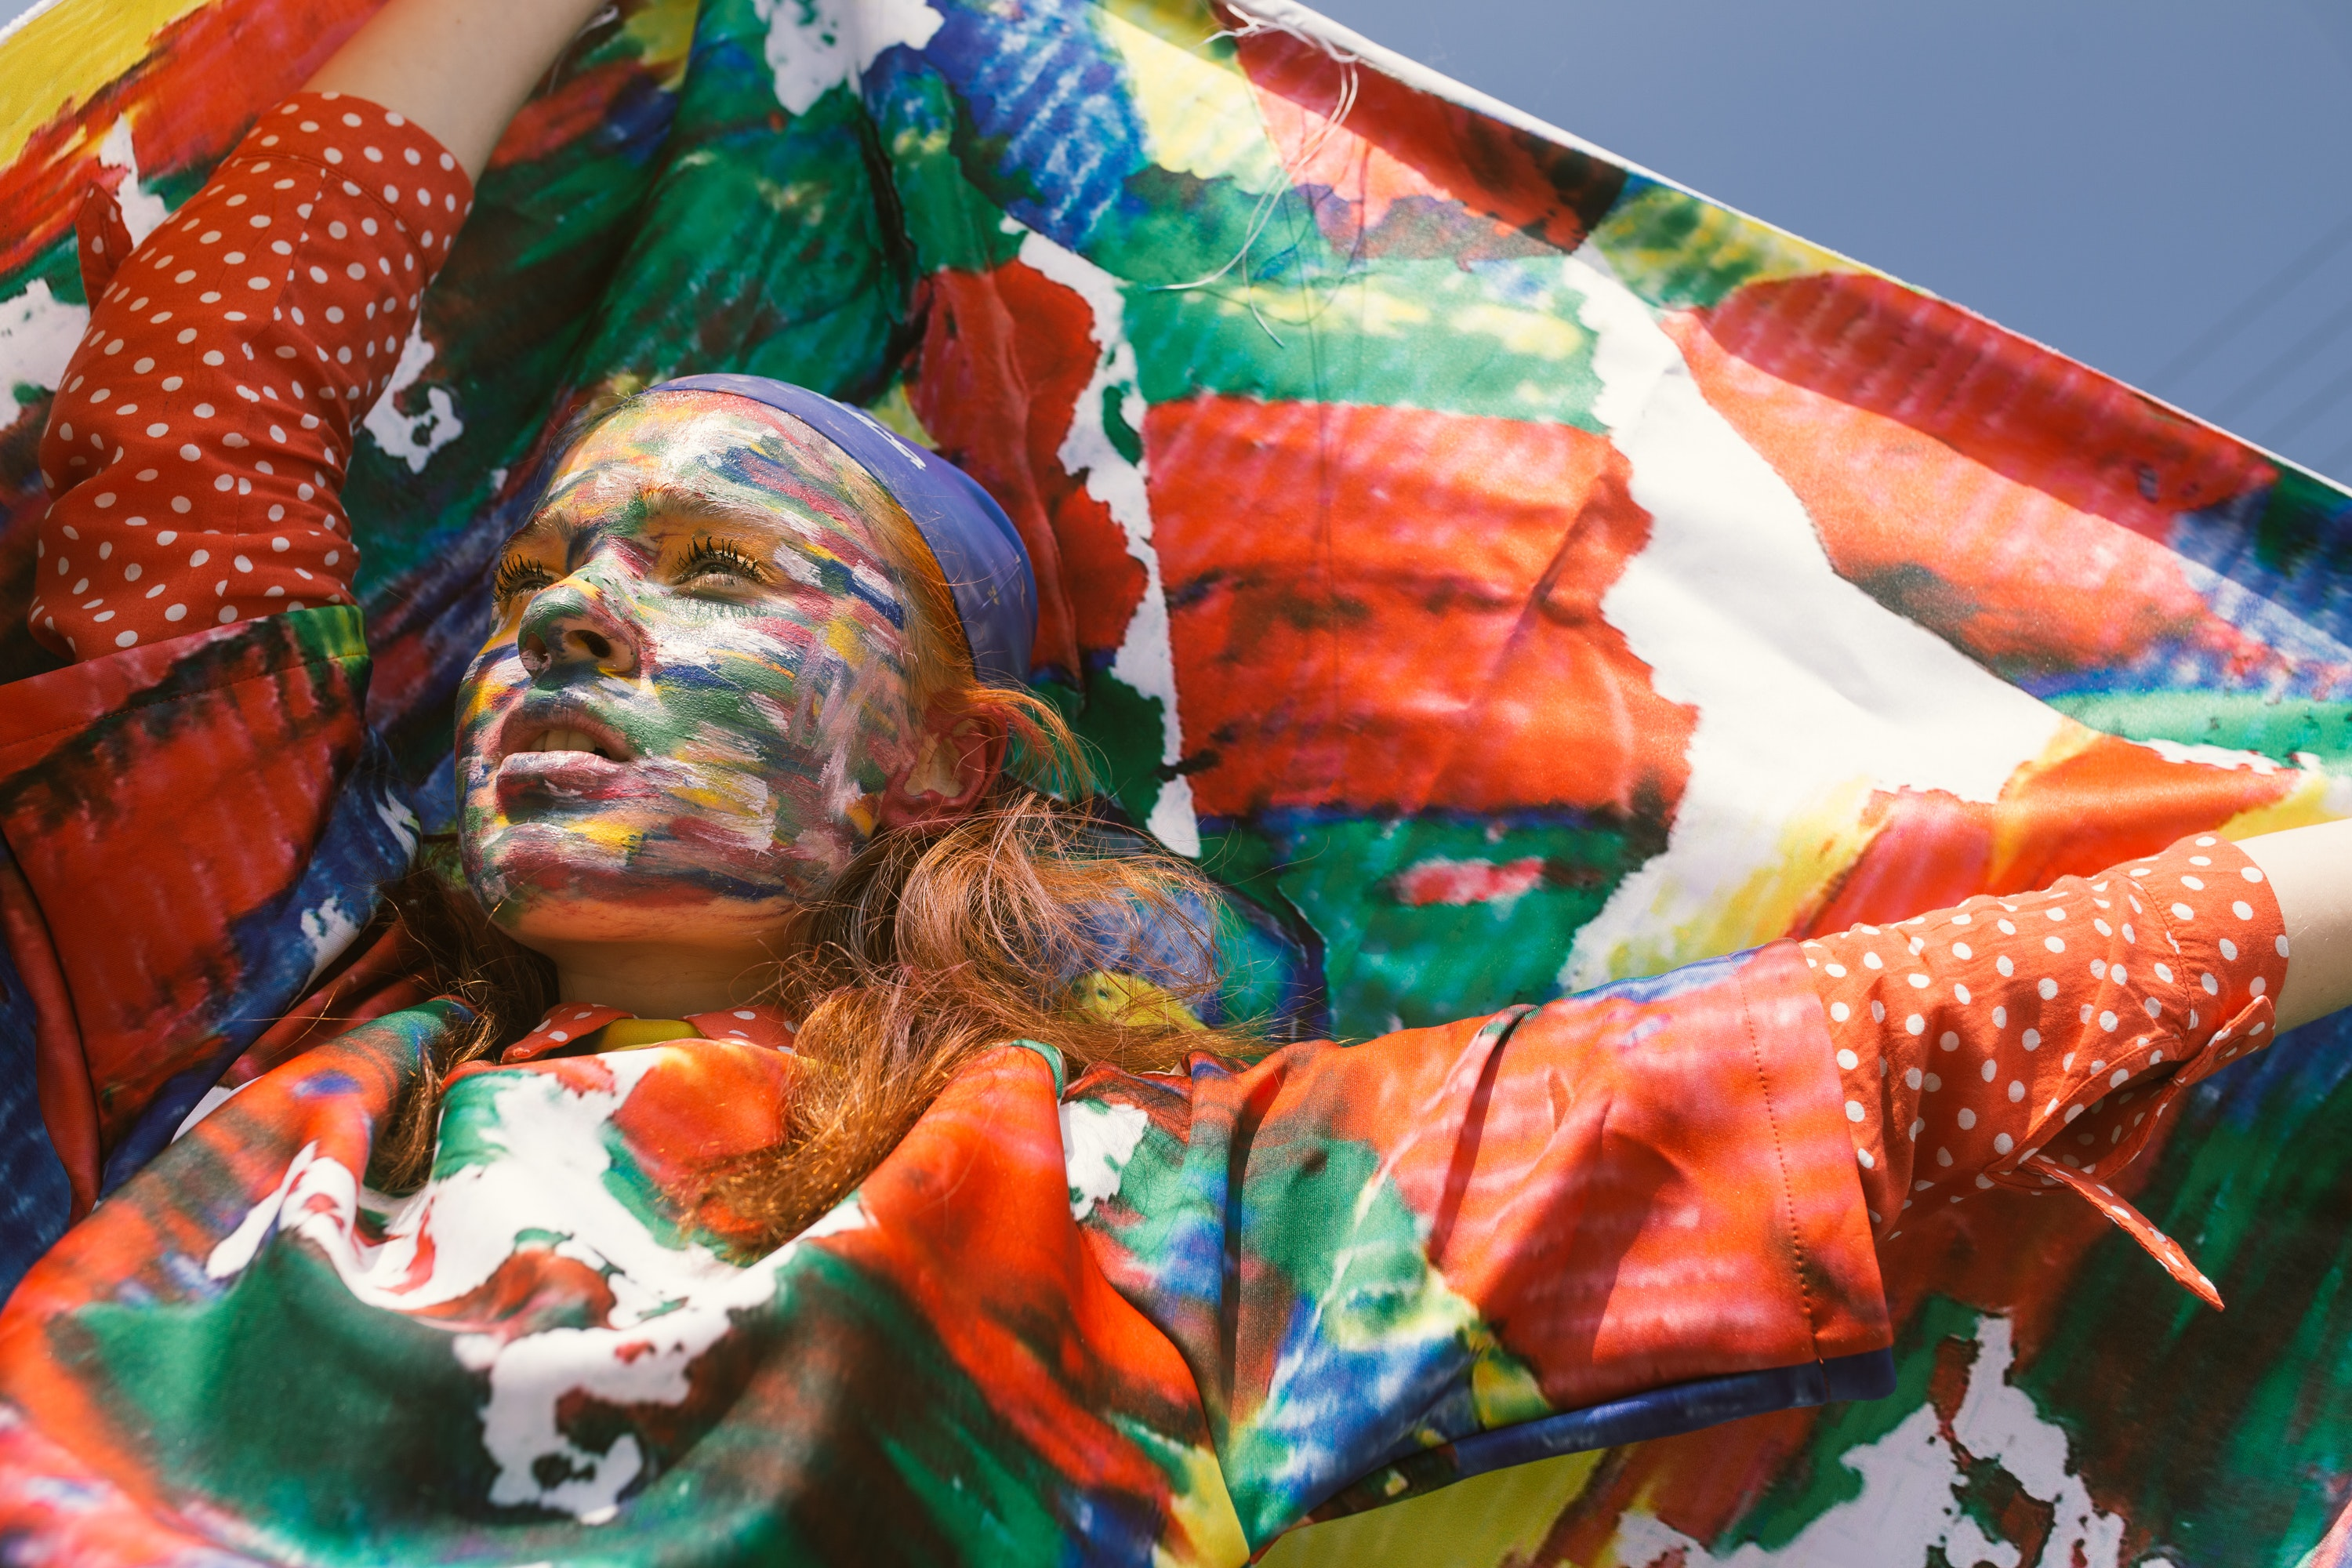 Woman with face paint raising her hands holding textile photo